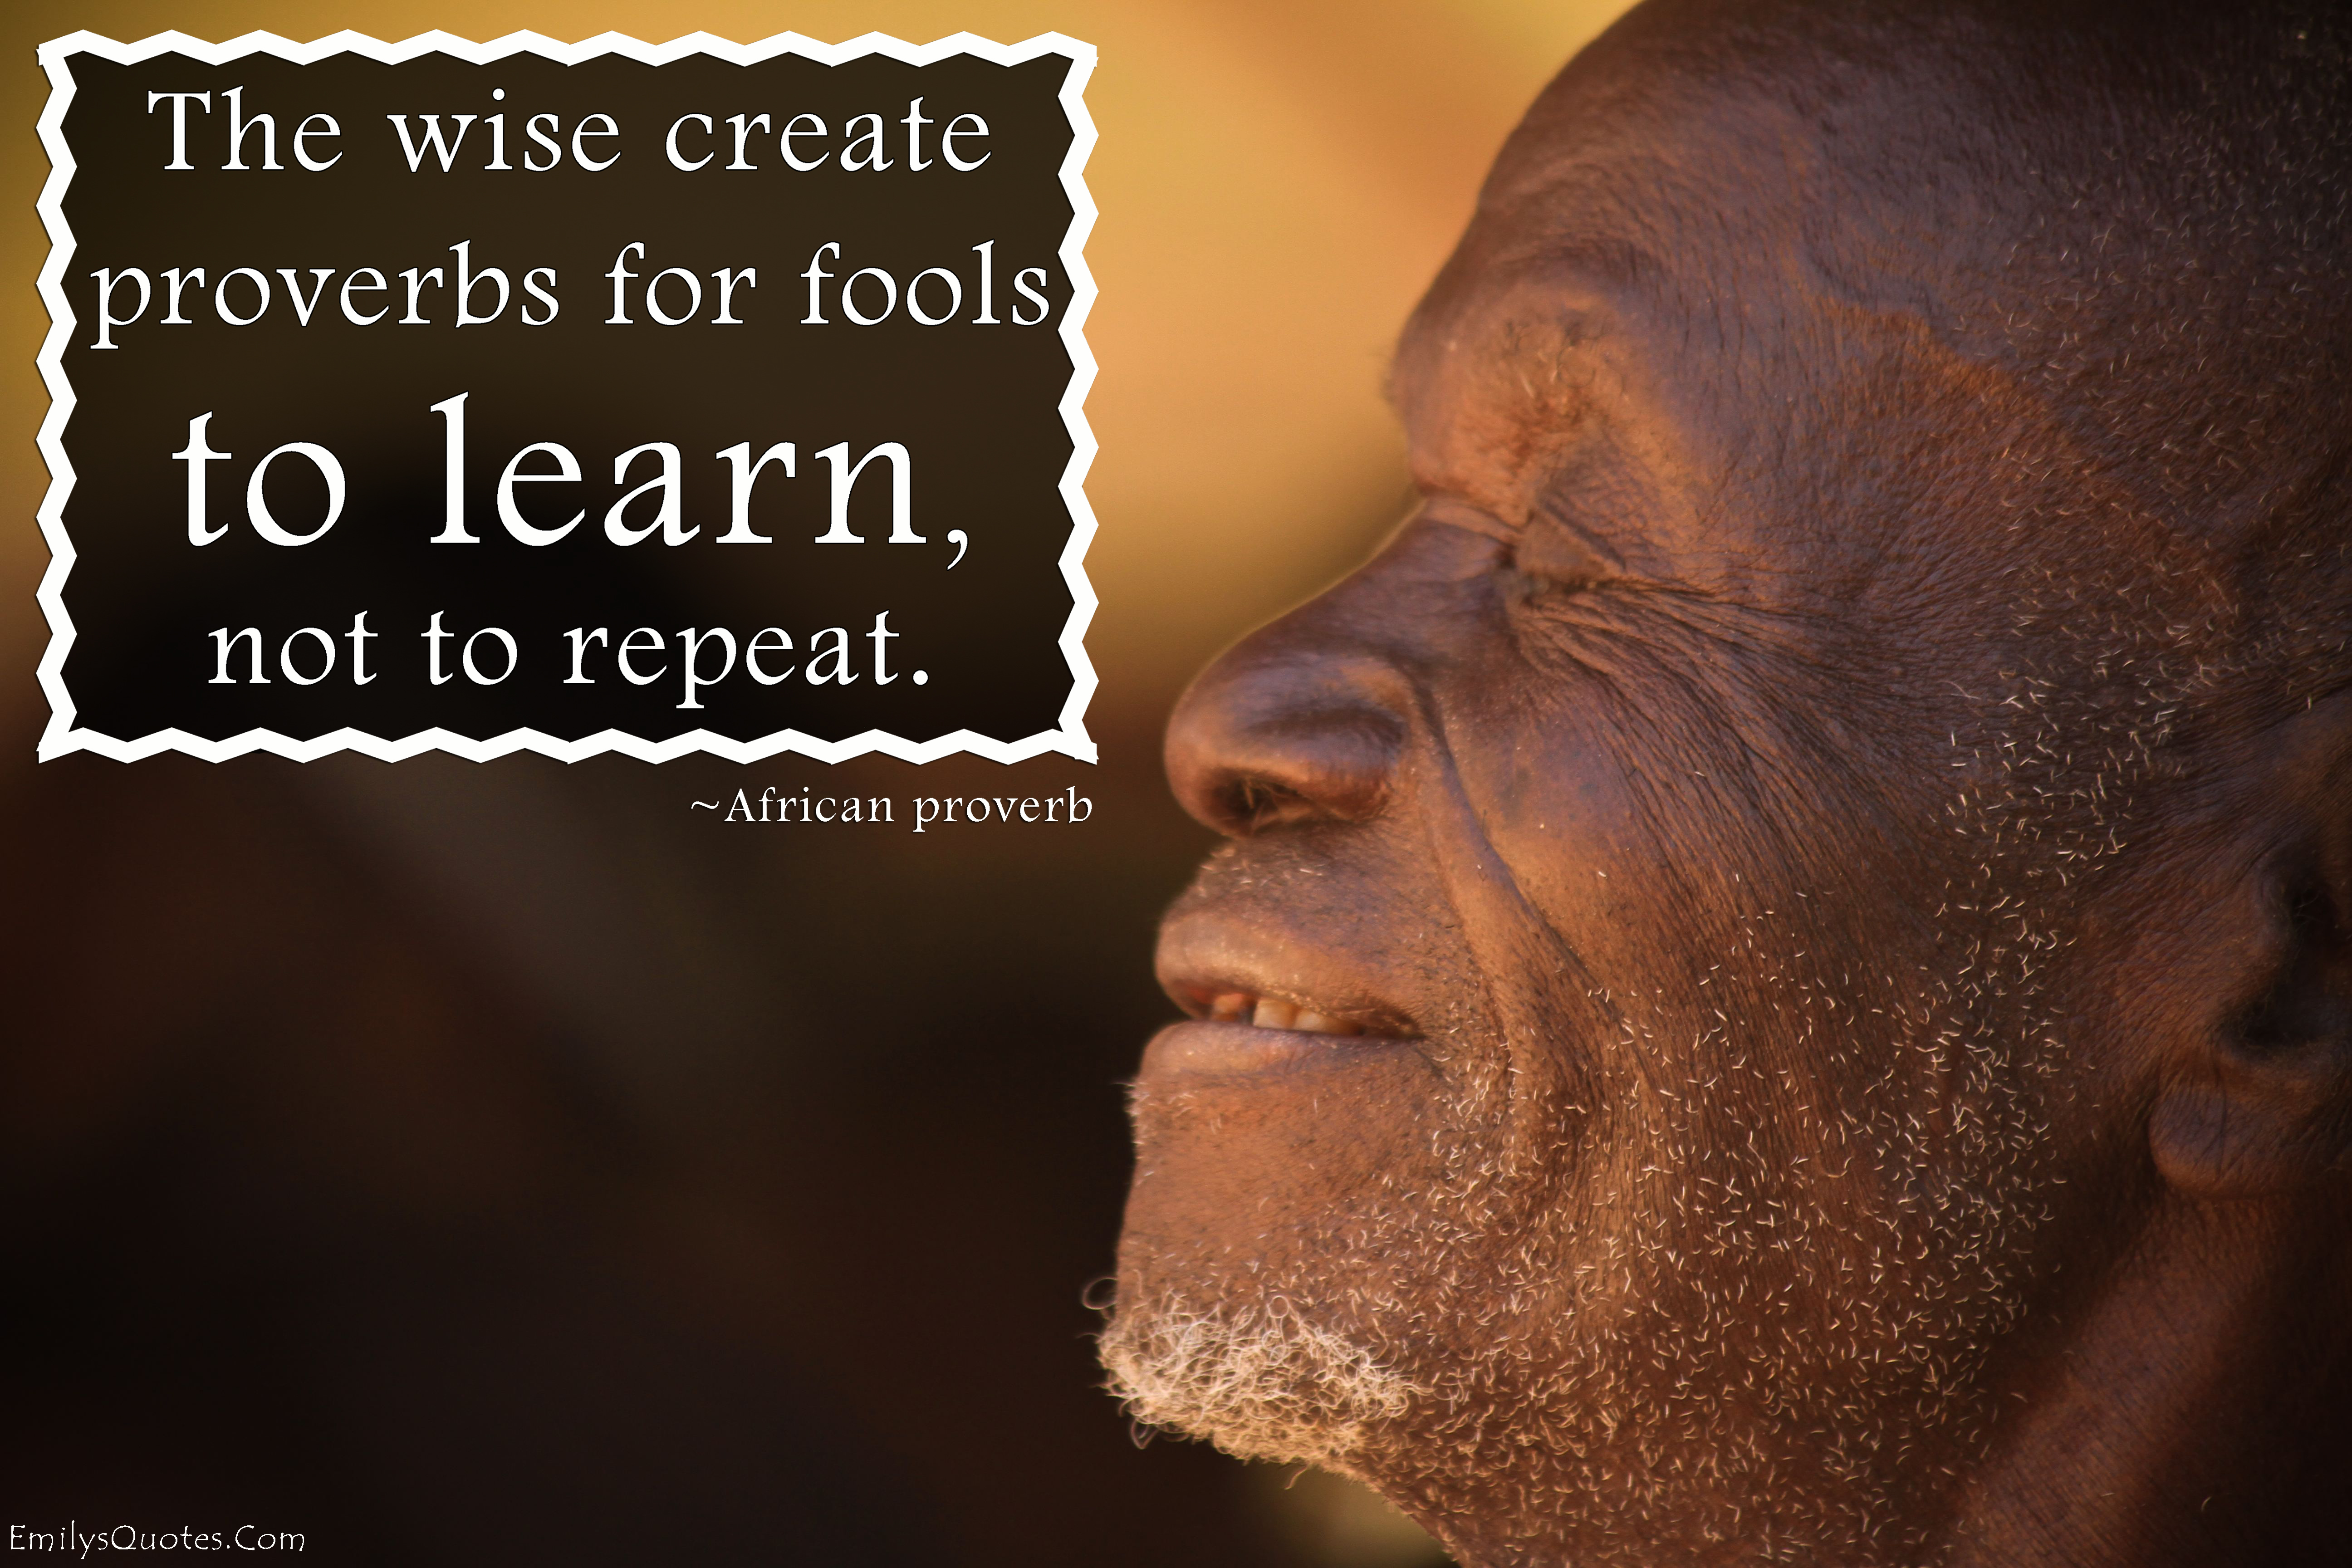 The wise create proverbs for fools to learn, not to repeat ...